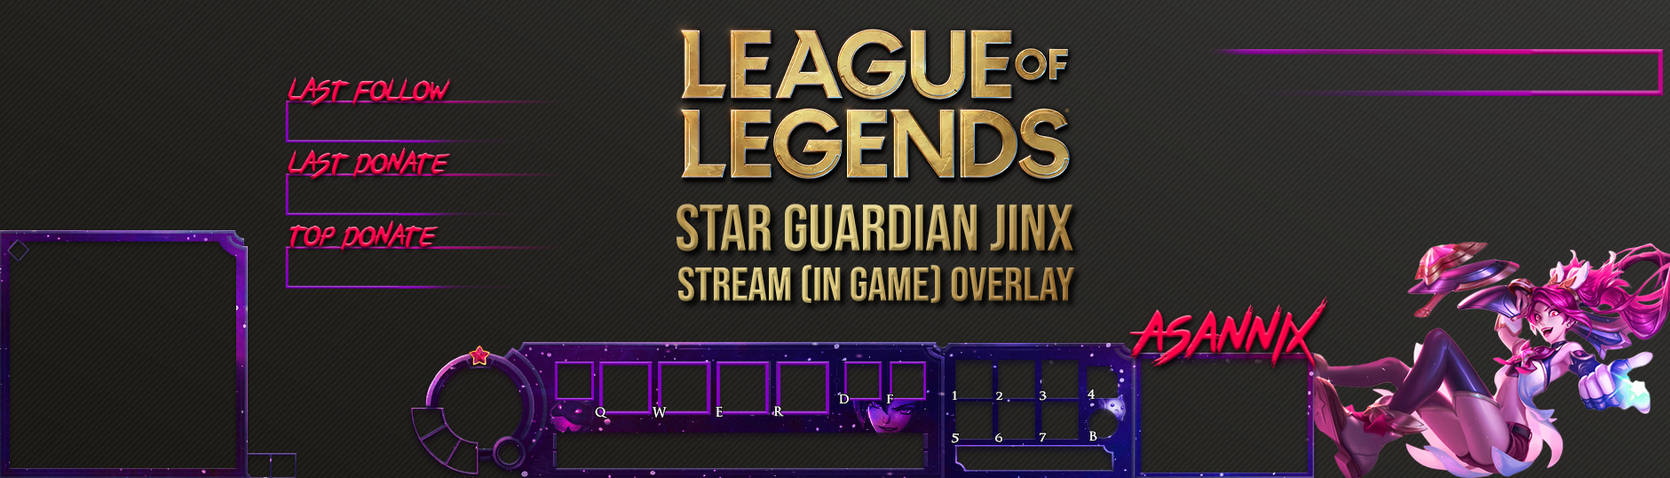 LEAGUEOFLEGENDS STAR GUARDIAN JINX STREAM OVERLAY